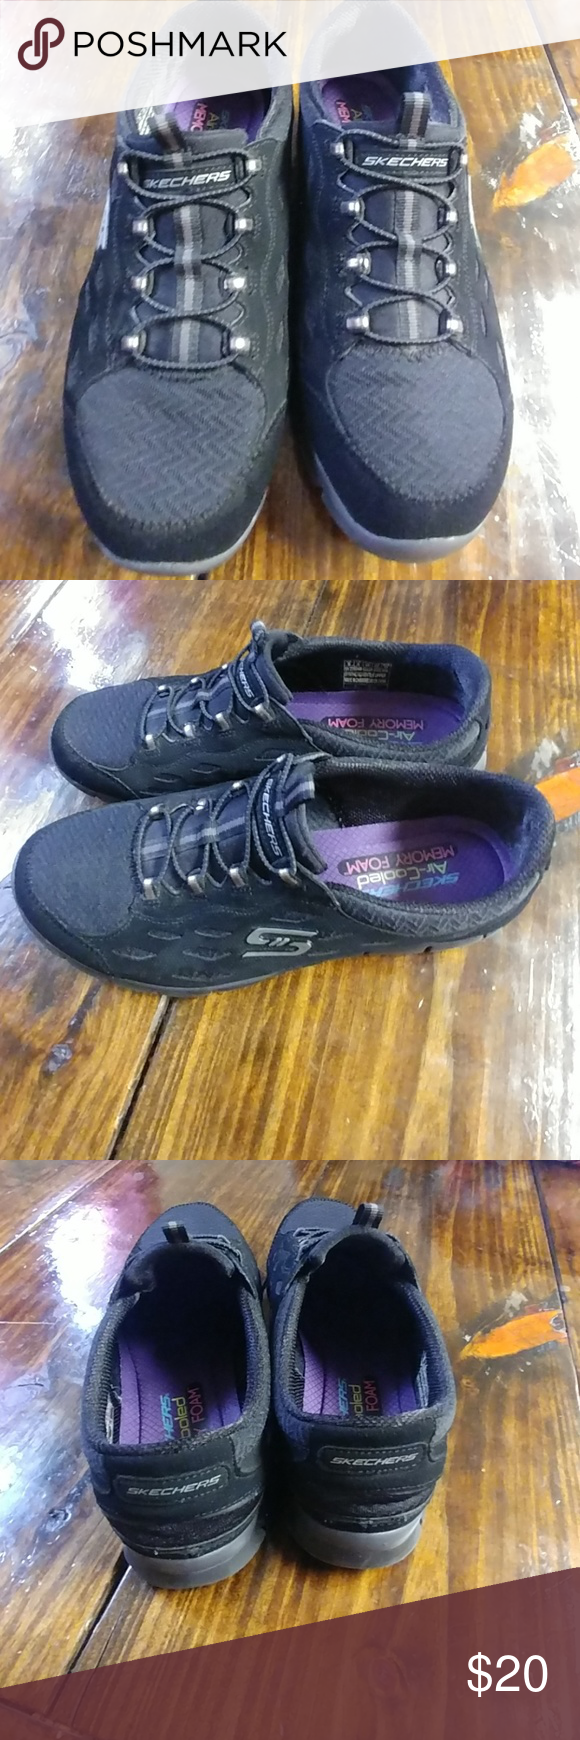 Very nice Skechers tenis shoes